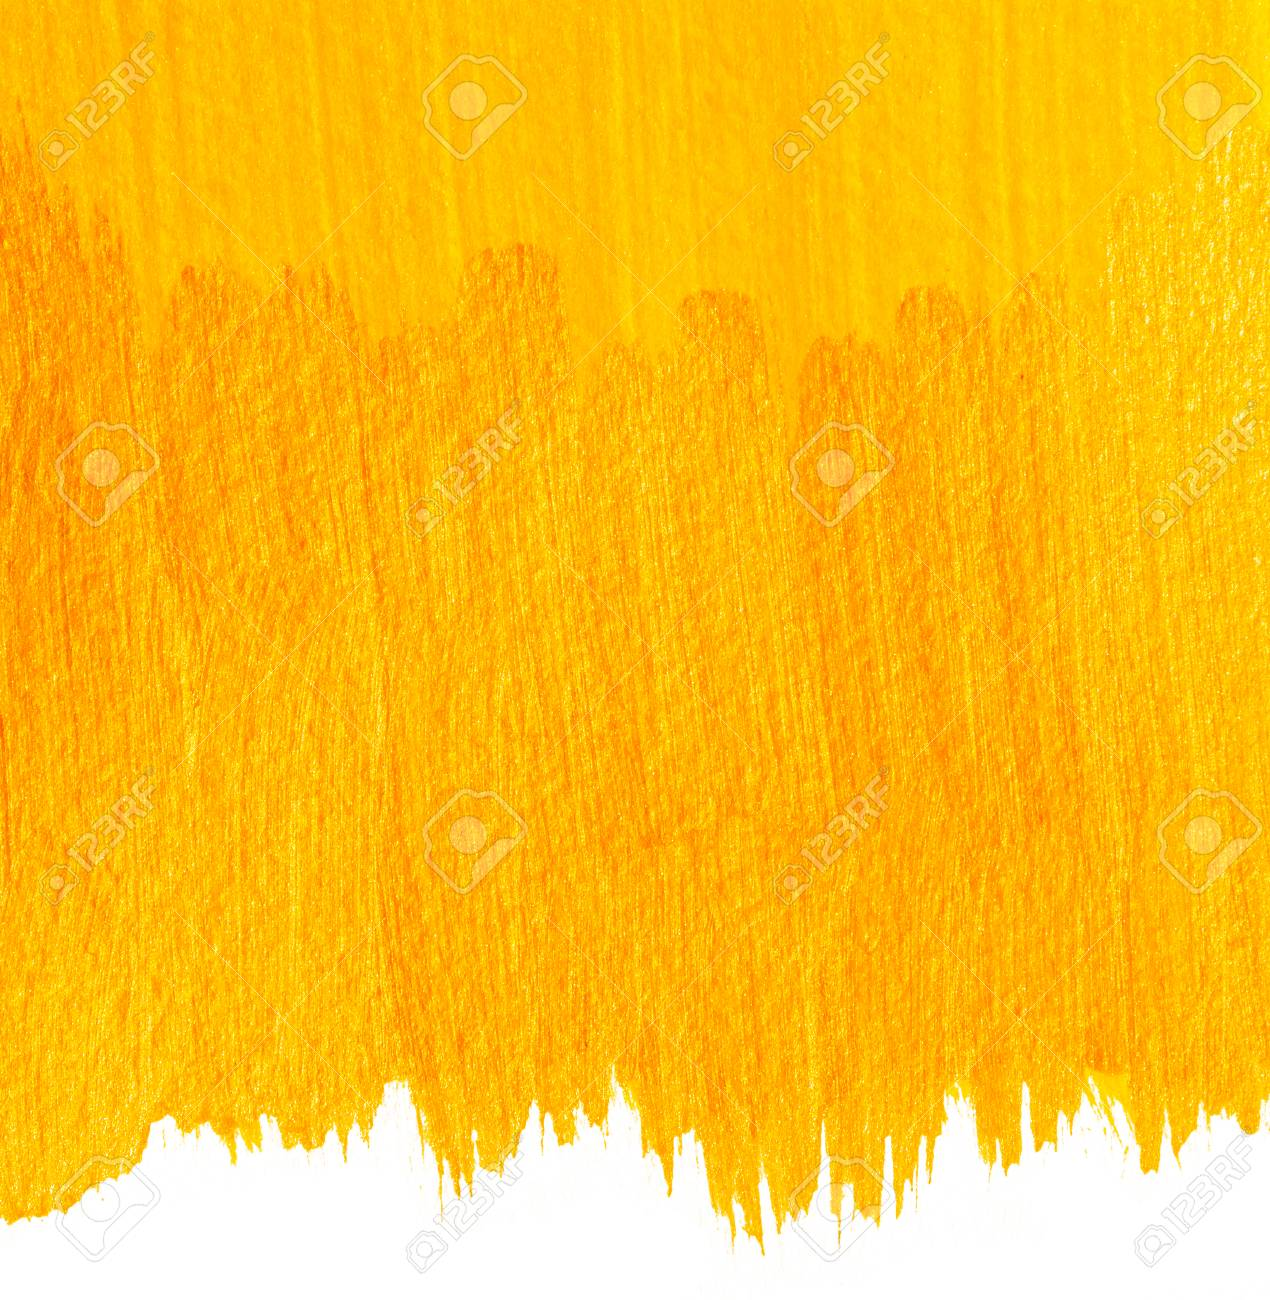 Yellow painted background  Handpainted acrylic banner